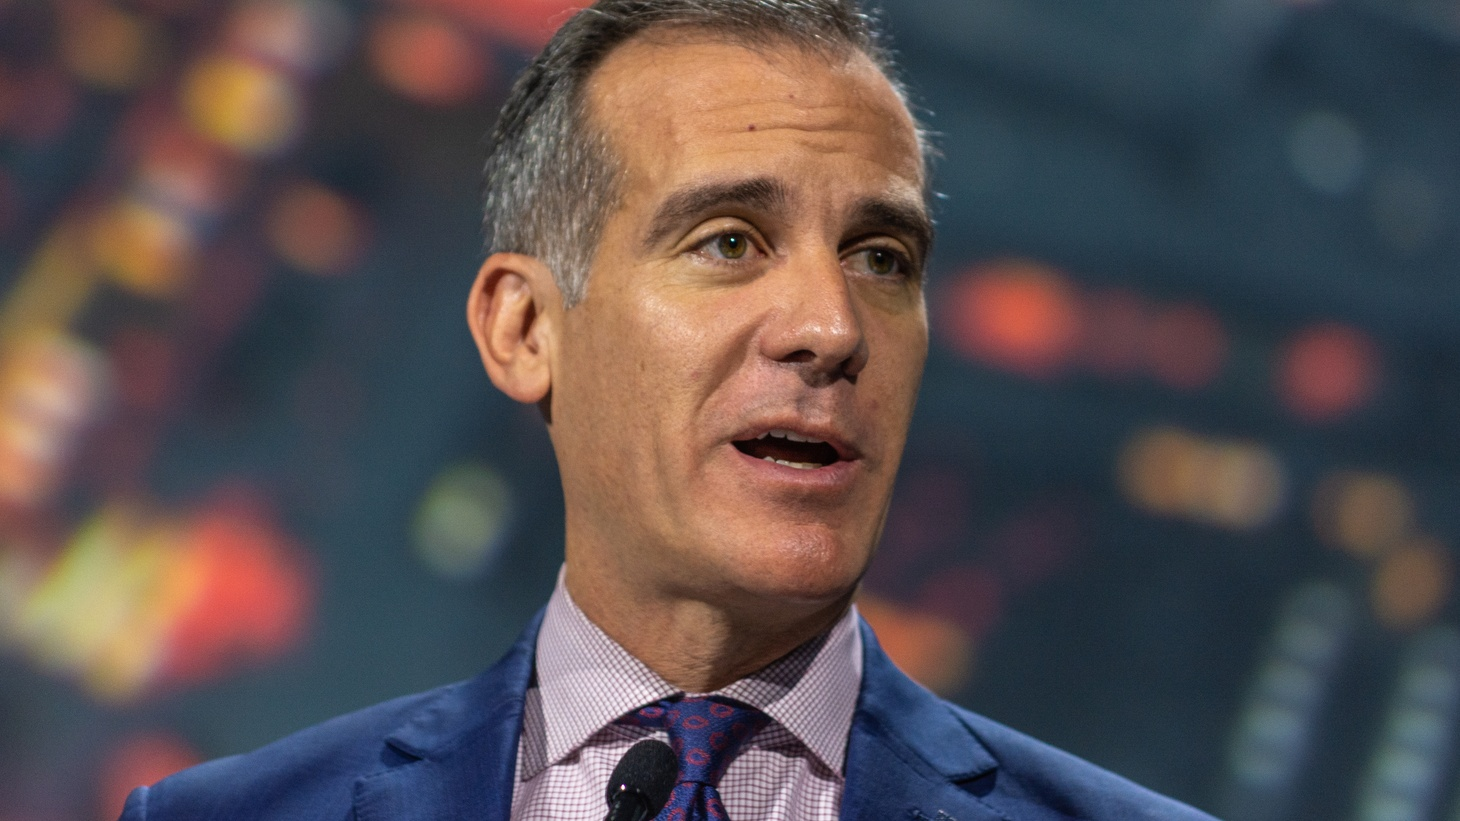 """Mayor Garcetti has confirmed he has been picked as President Biden's ambassador nominee to India. """"I love Los Angeles and will always be an Angeleno. I want you to know that every day I am your mayor, I will continue to lead this city like it is my first day on the job, with passion, focus, and determination,"""" Garcetti said in a statement."""